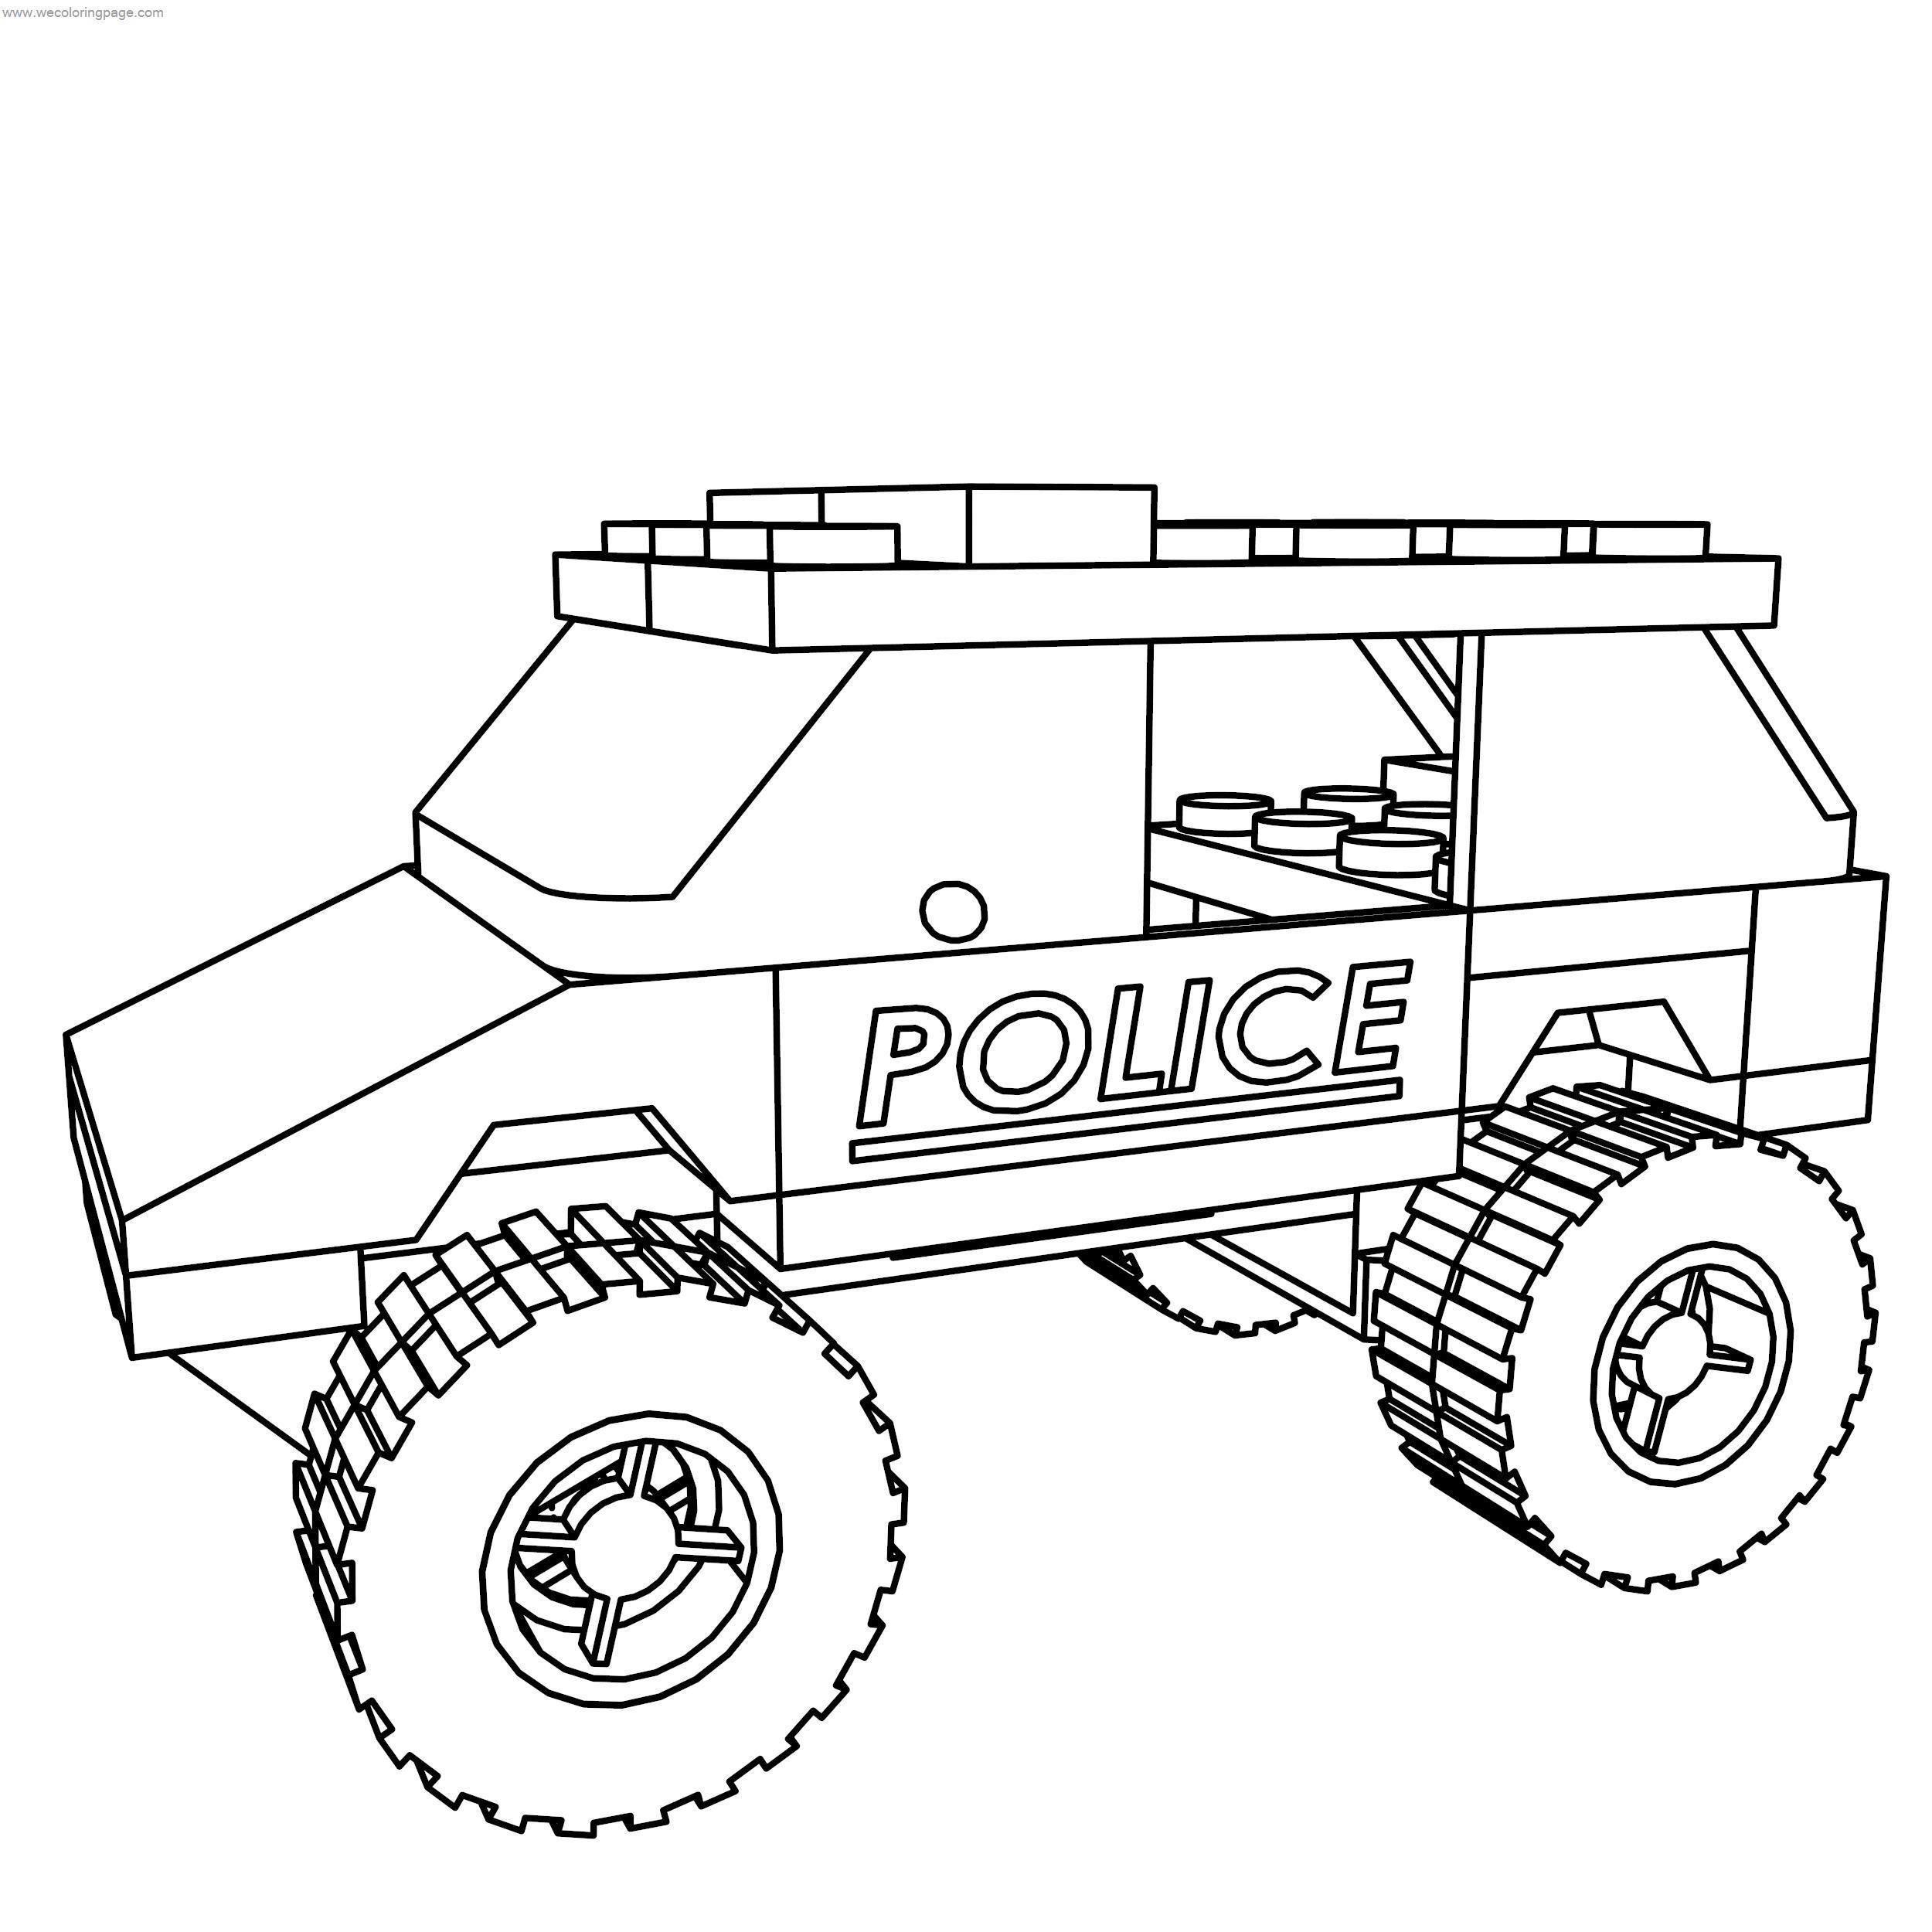 Police Car Coloring Pages - GetColoringPages.com | 2500x2500